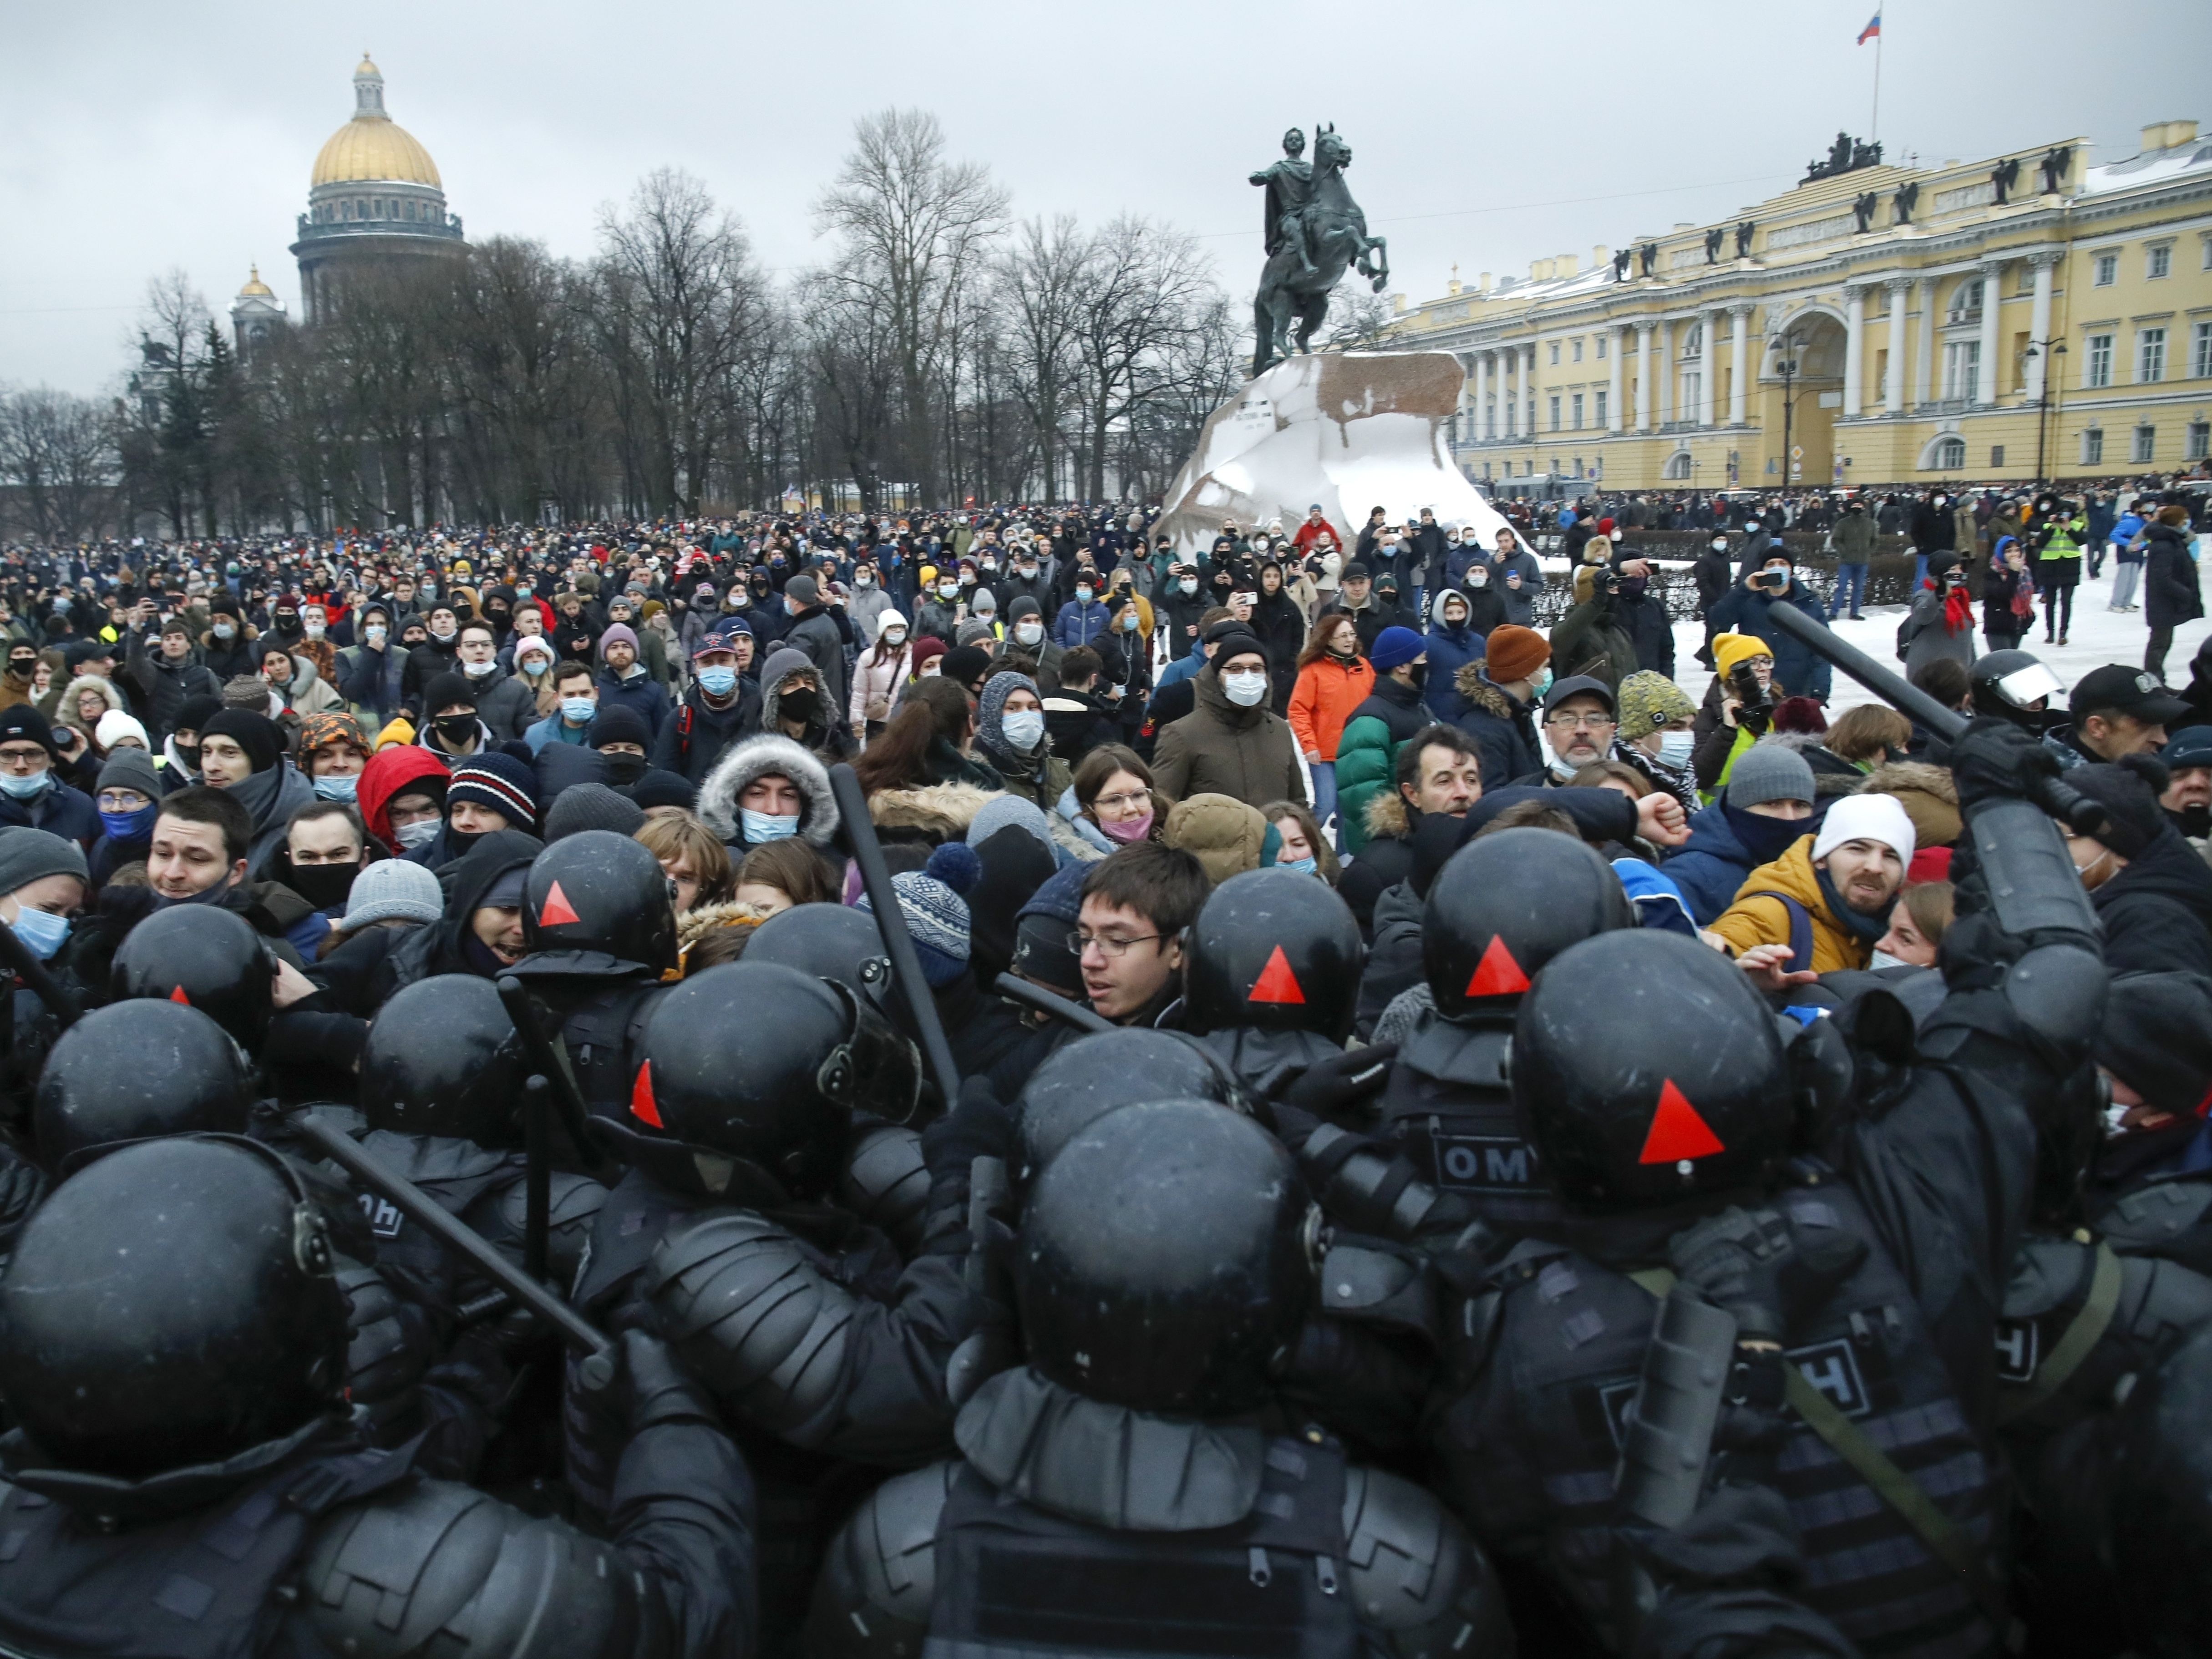 US State Department denounces Russia's 'harsh tactics' against Navalny protesters